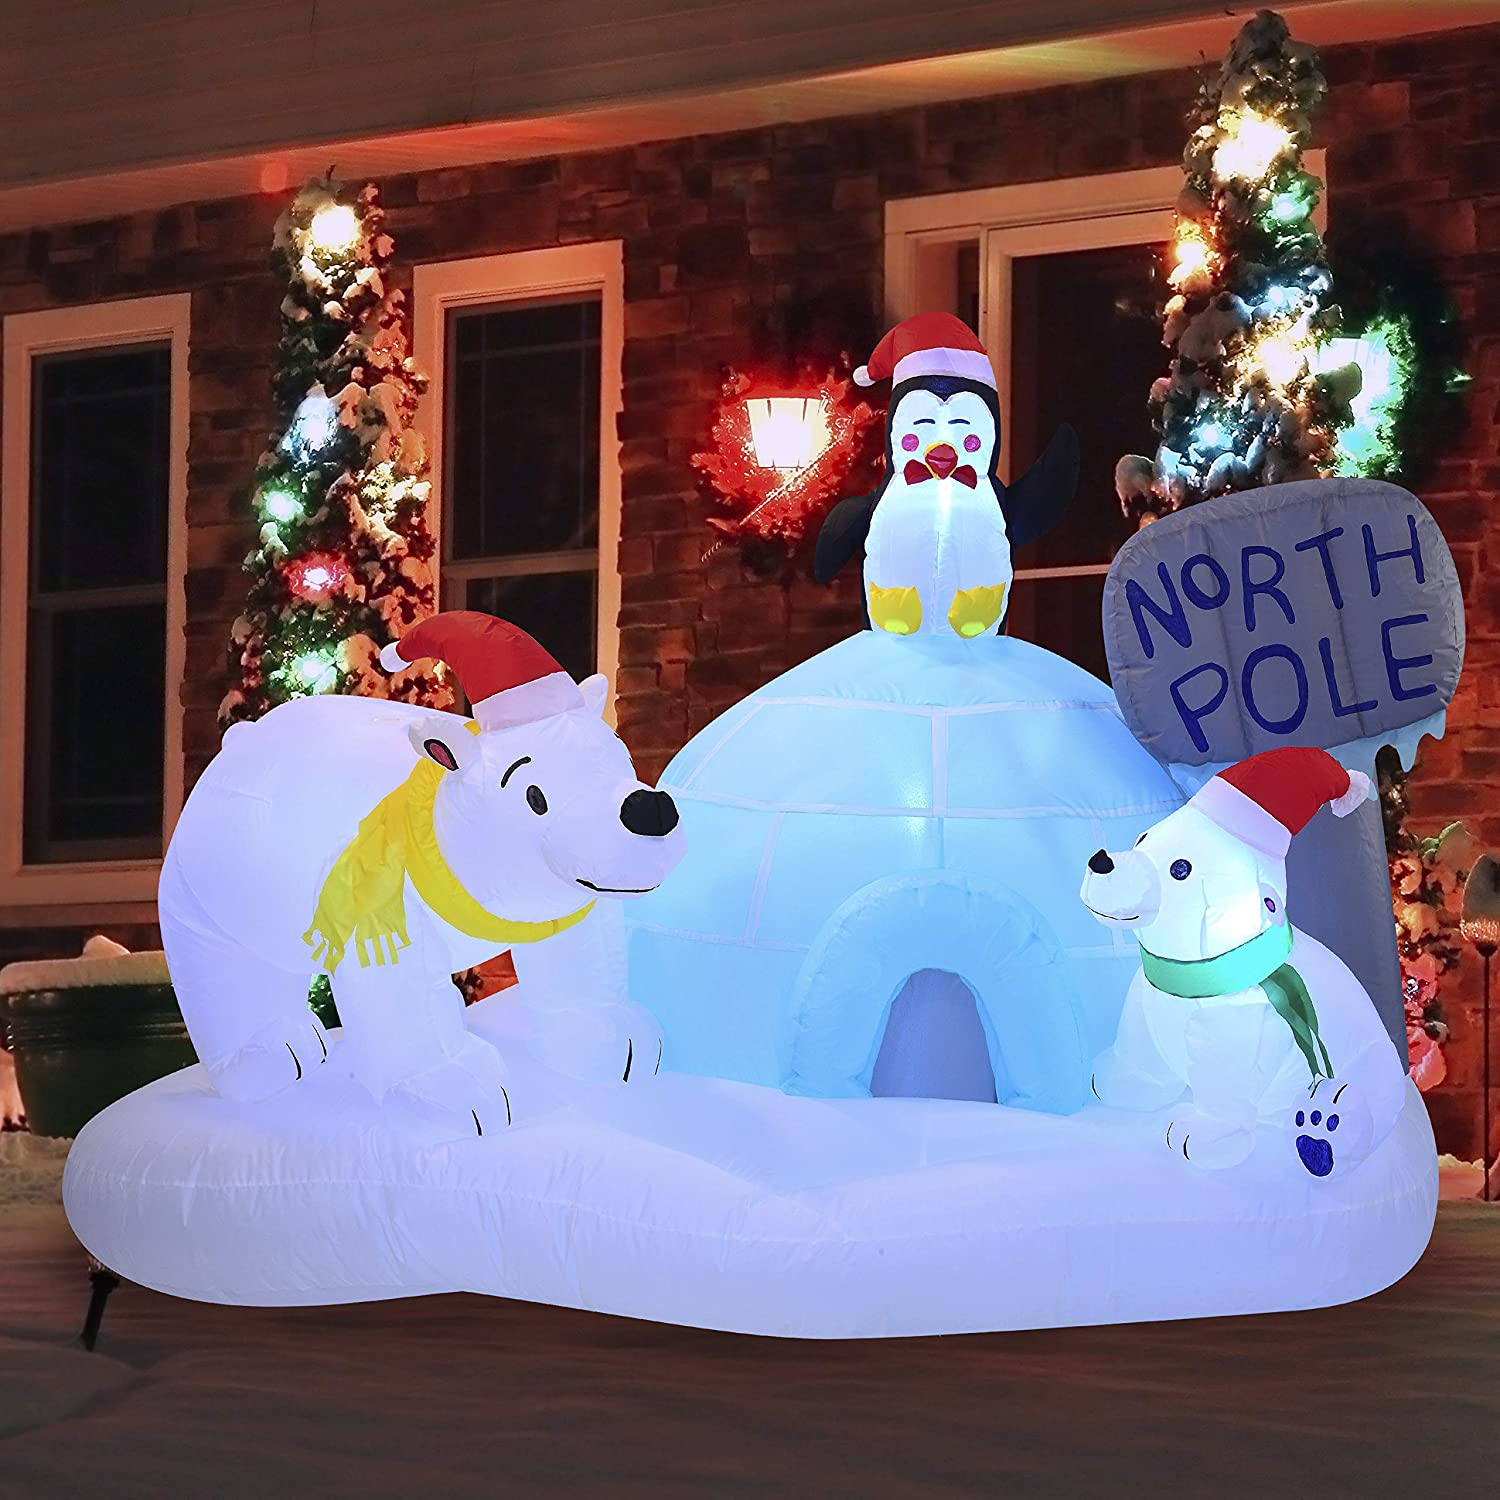 Joiedomi Christmas Inflatable Christmas North Pole Inflatable 6 ft with Build-in LEDs Blow Up Inflatables for Christmas Party Indoor, Outdoor, Yard, Garden, Lawn Décor, Holiday Season Decorations